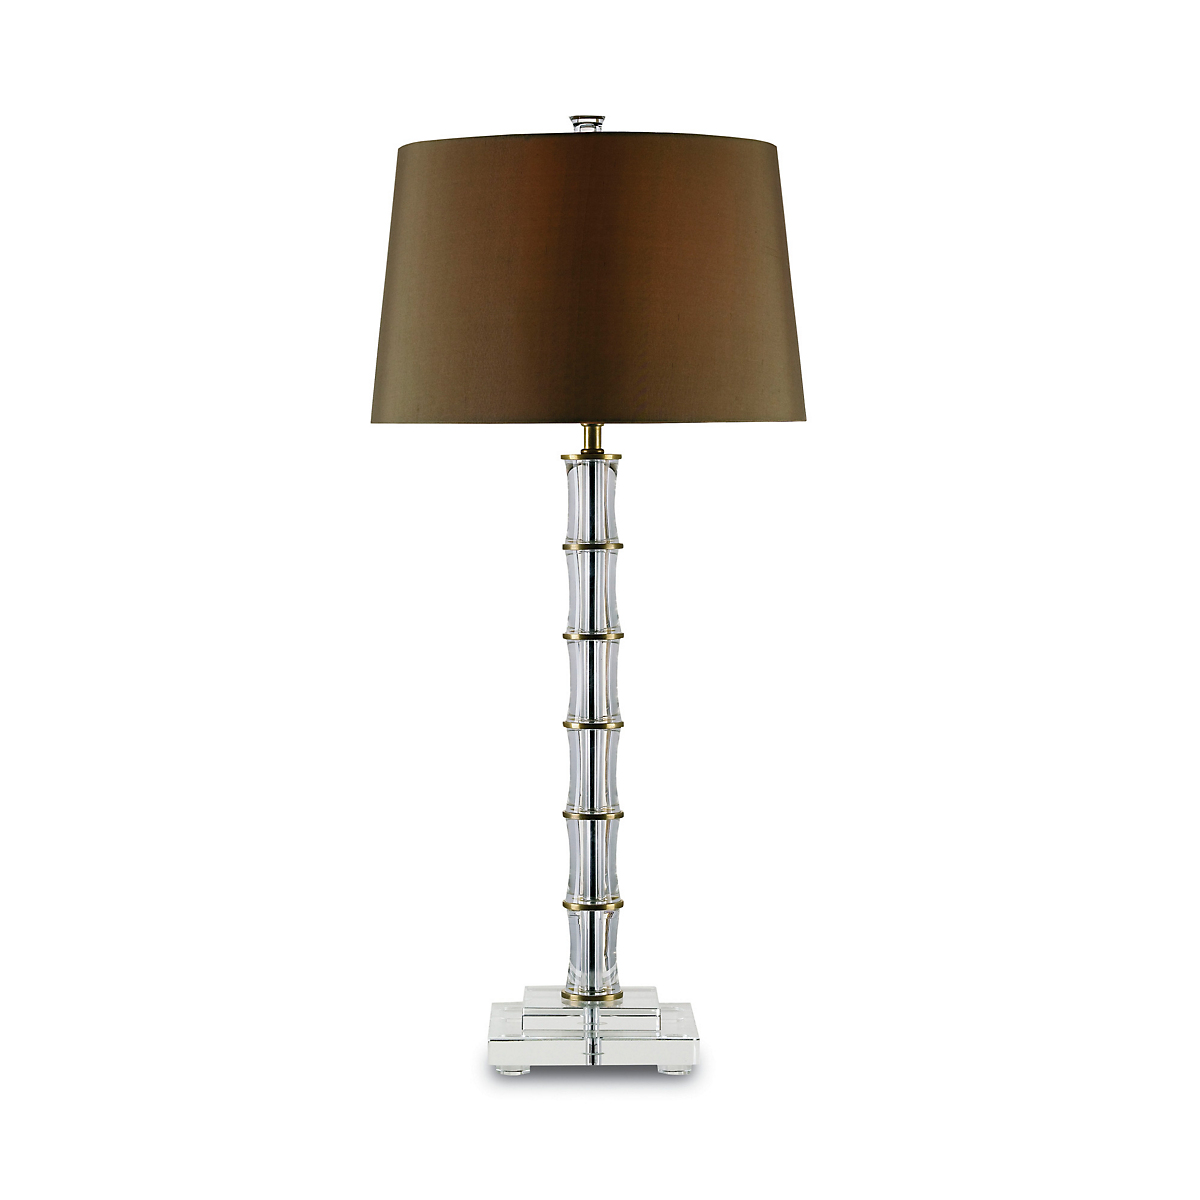 Currey & Company Yardley Table Lamp